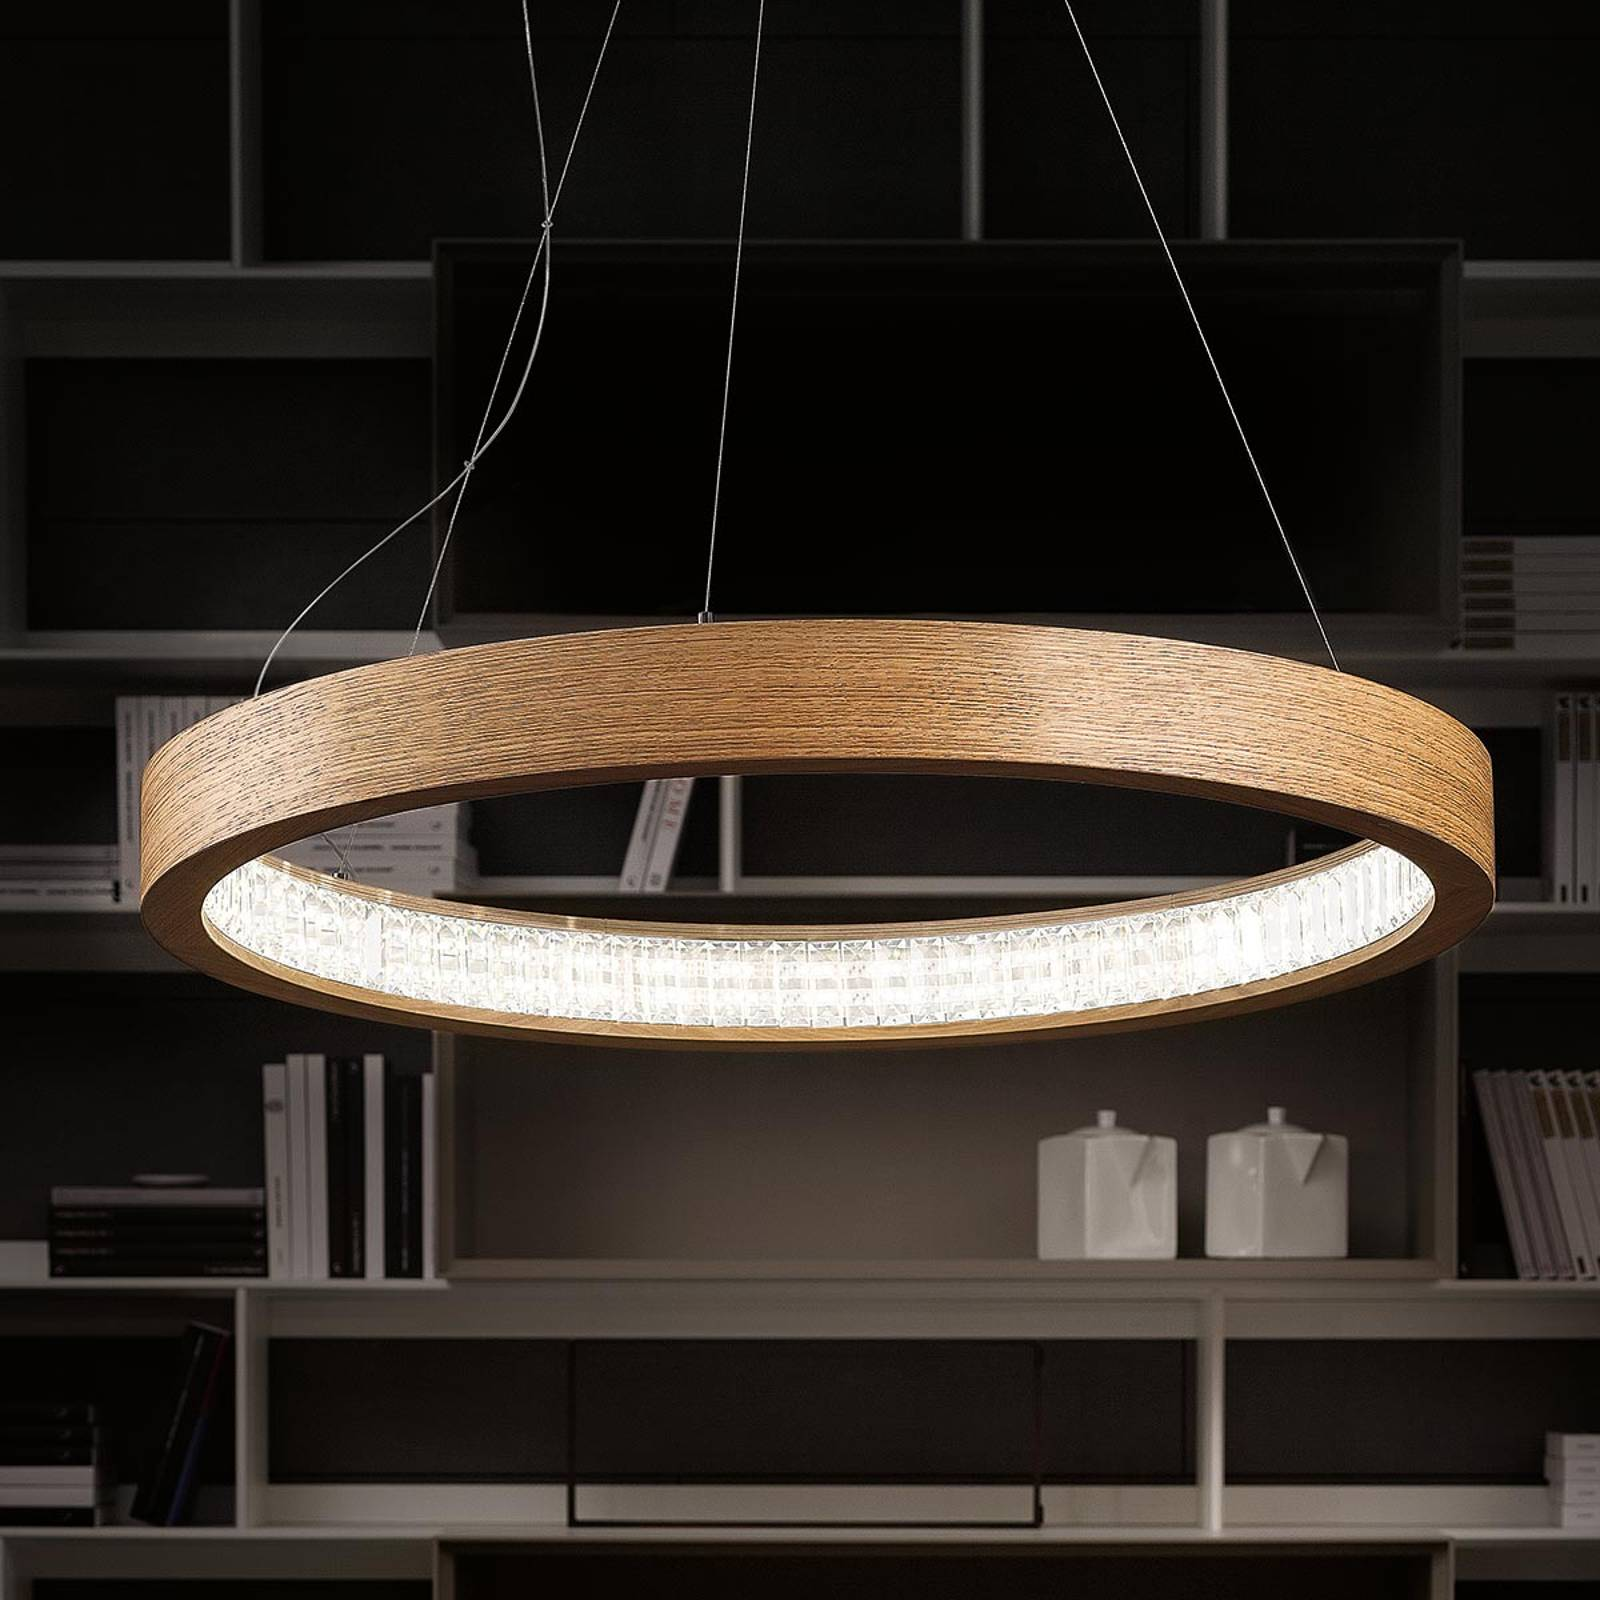 Natural LED hanging light Libe Round, 90 cm from Masiero